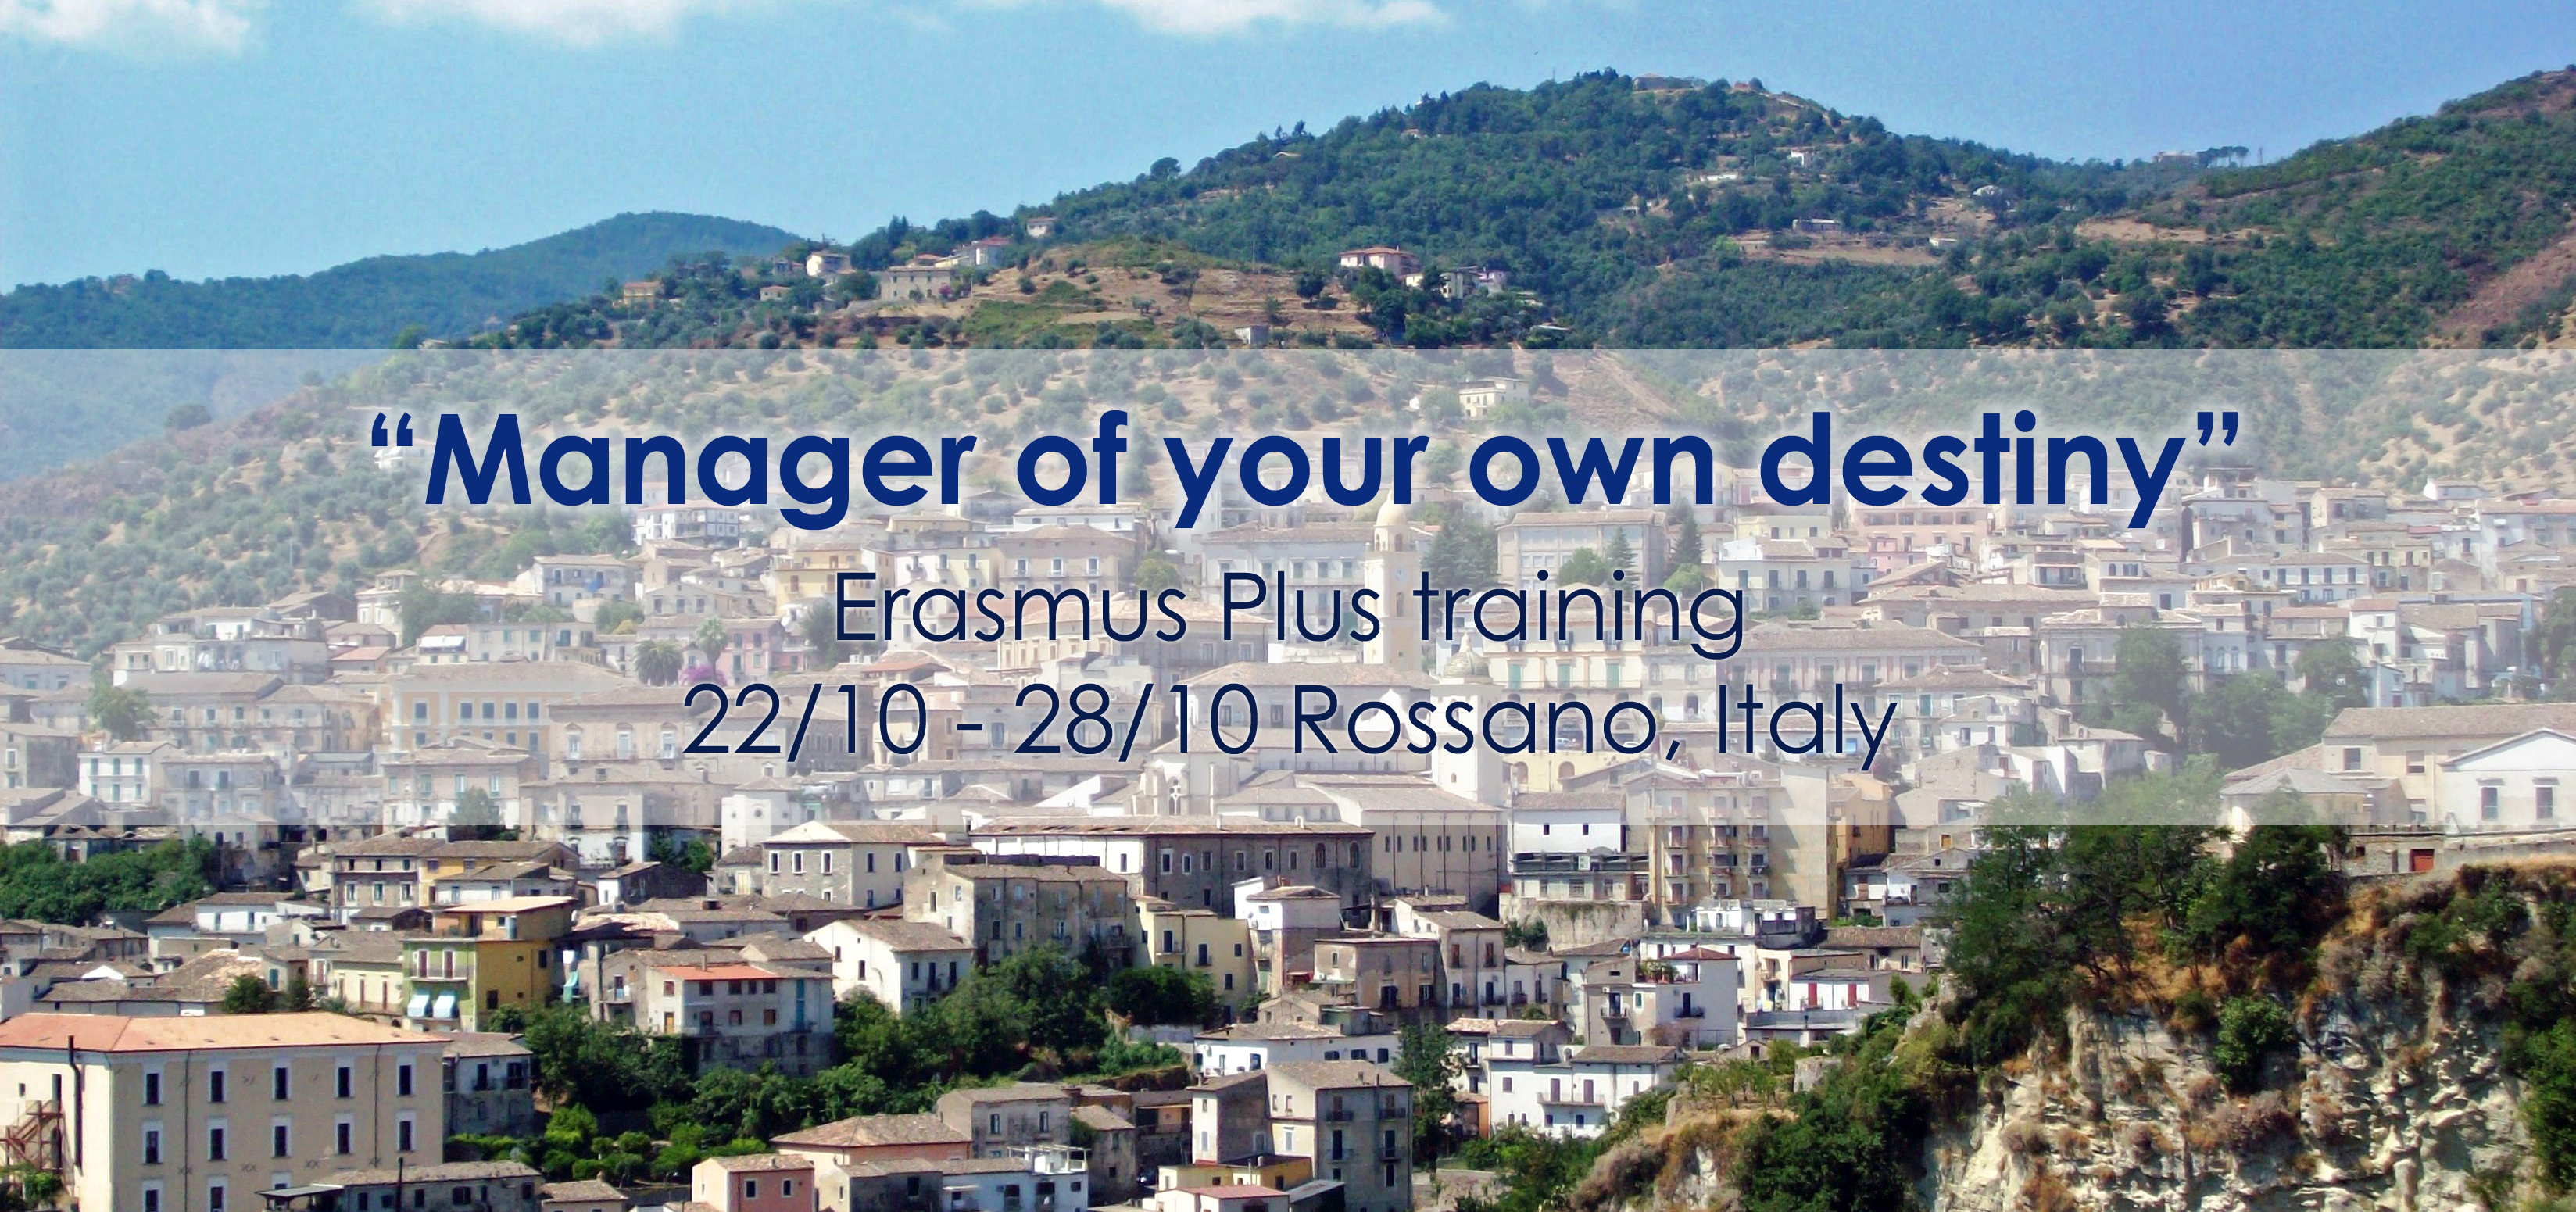 Manager of your own destiny Rossano Erasmus Plus training